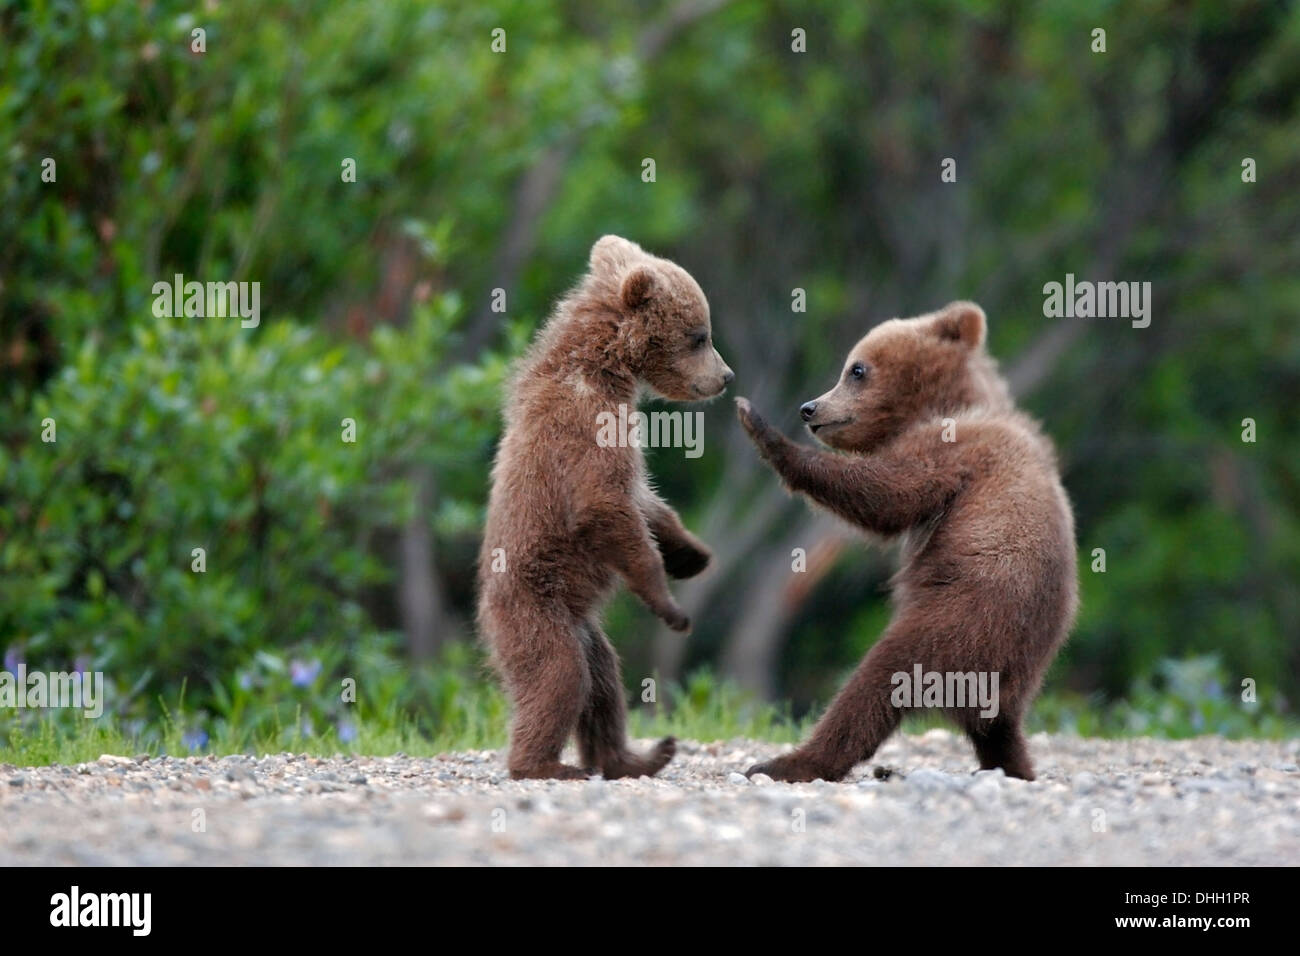 Spring cubs, grizzly or brown bear (Ursus arctos) in Denali National Park, Alaska. - Stock Image